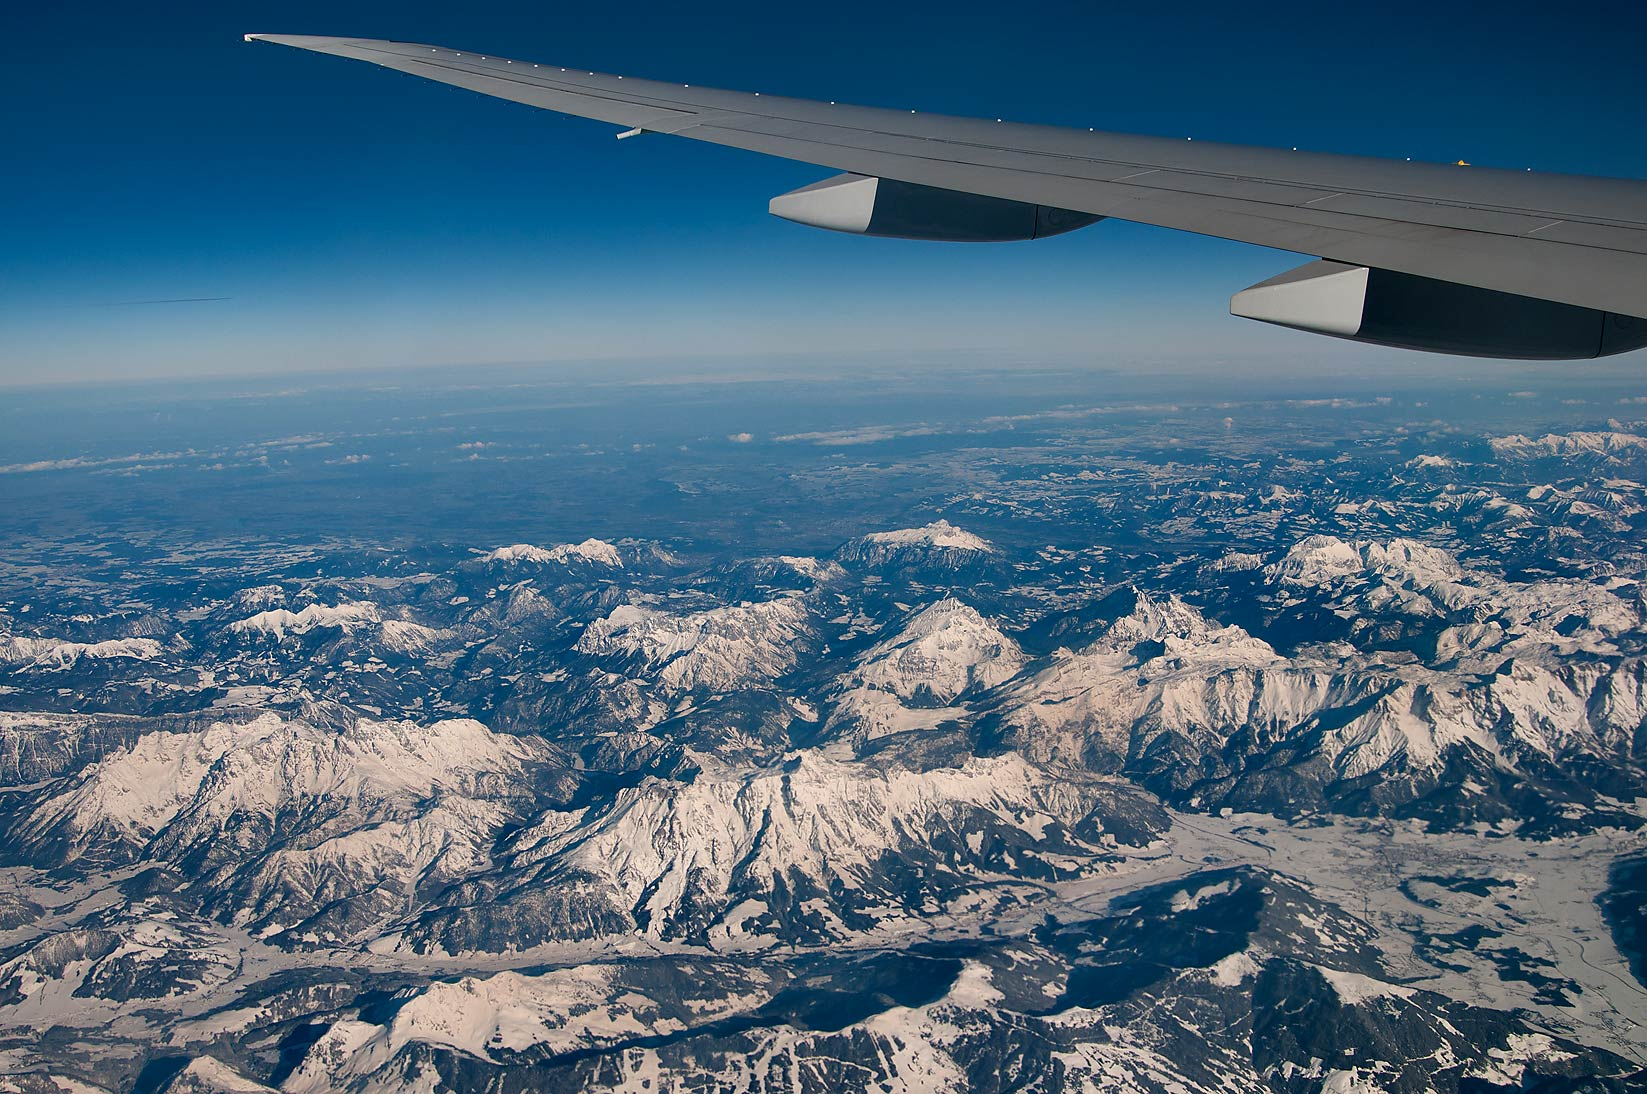 Leogang Mountains and a town of Saalfelden in...window of a plane from Houston to Doha